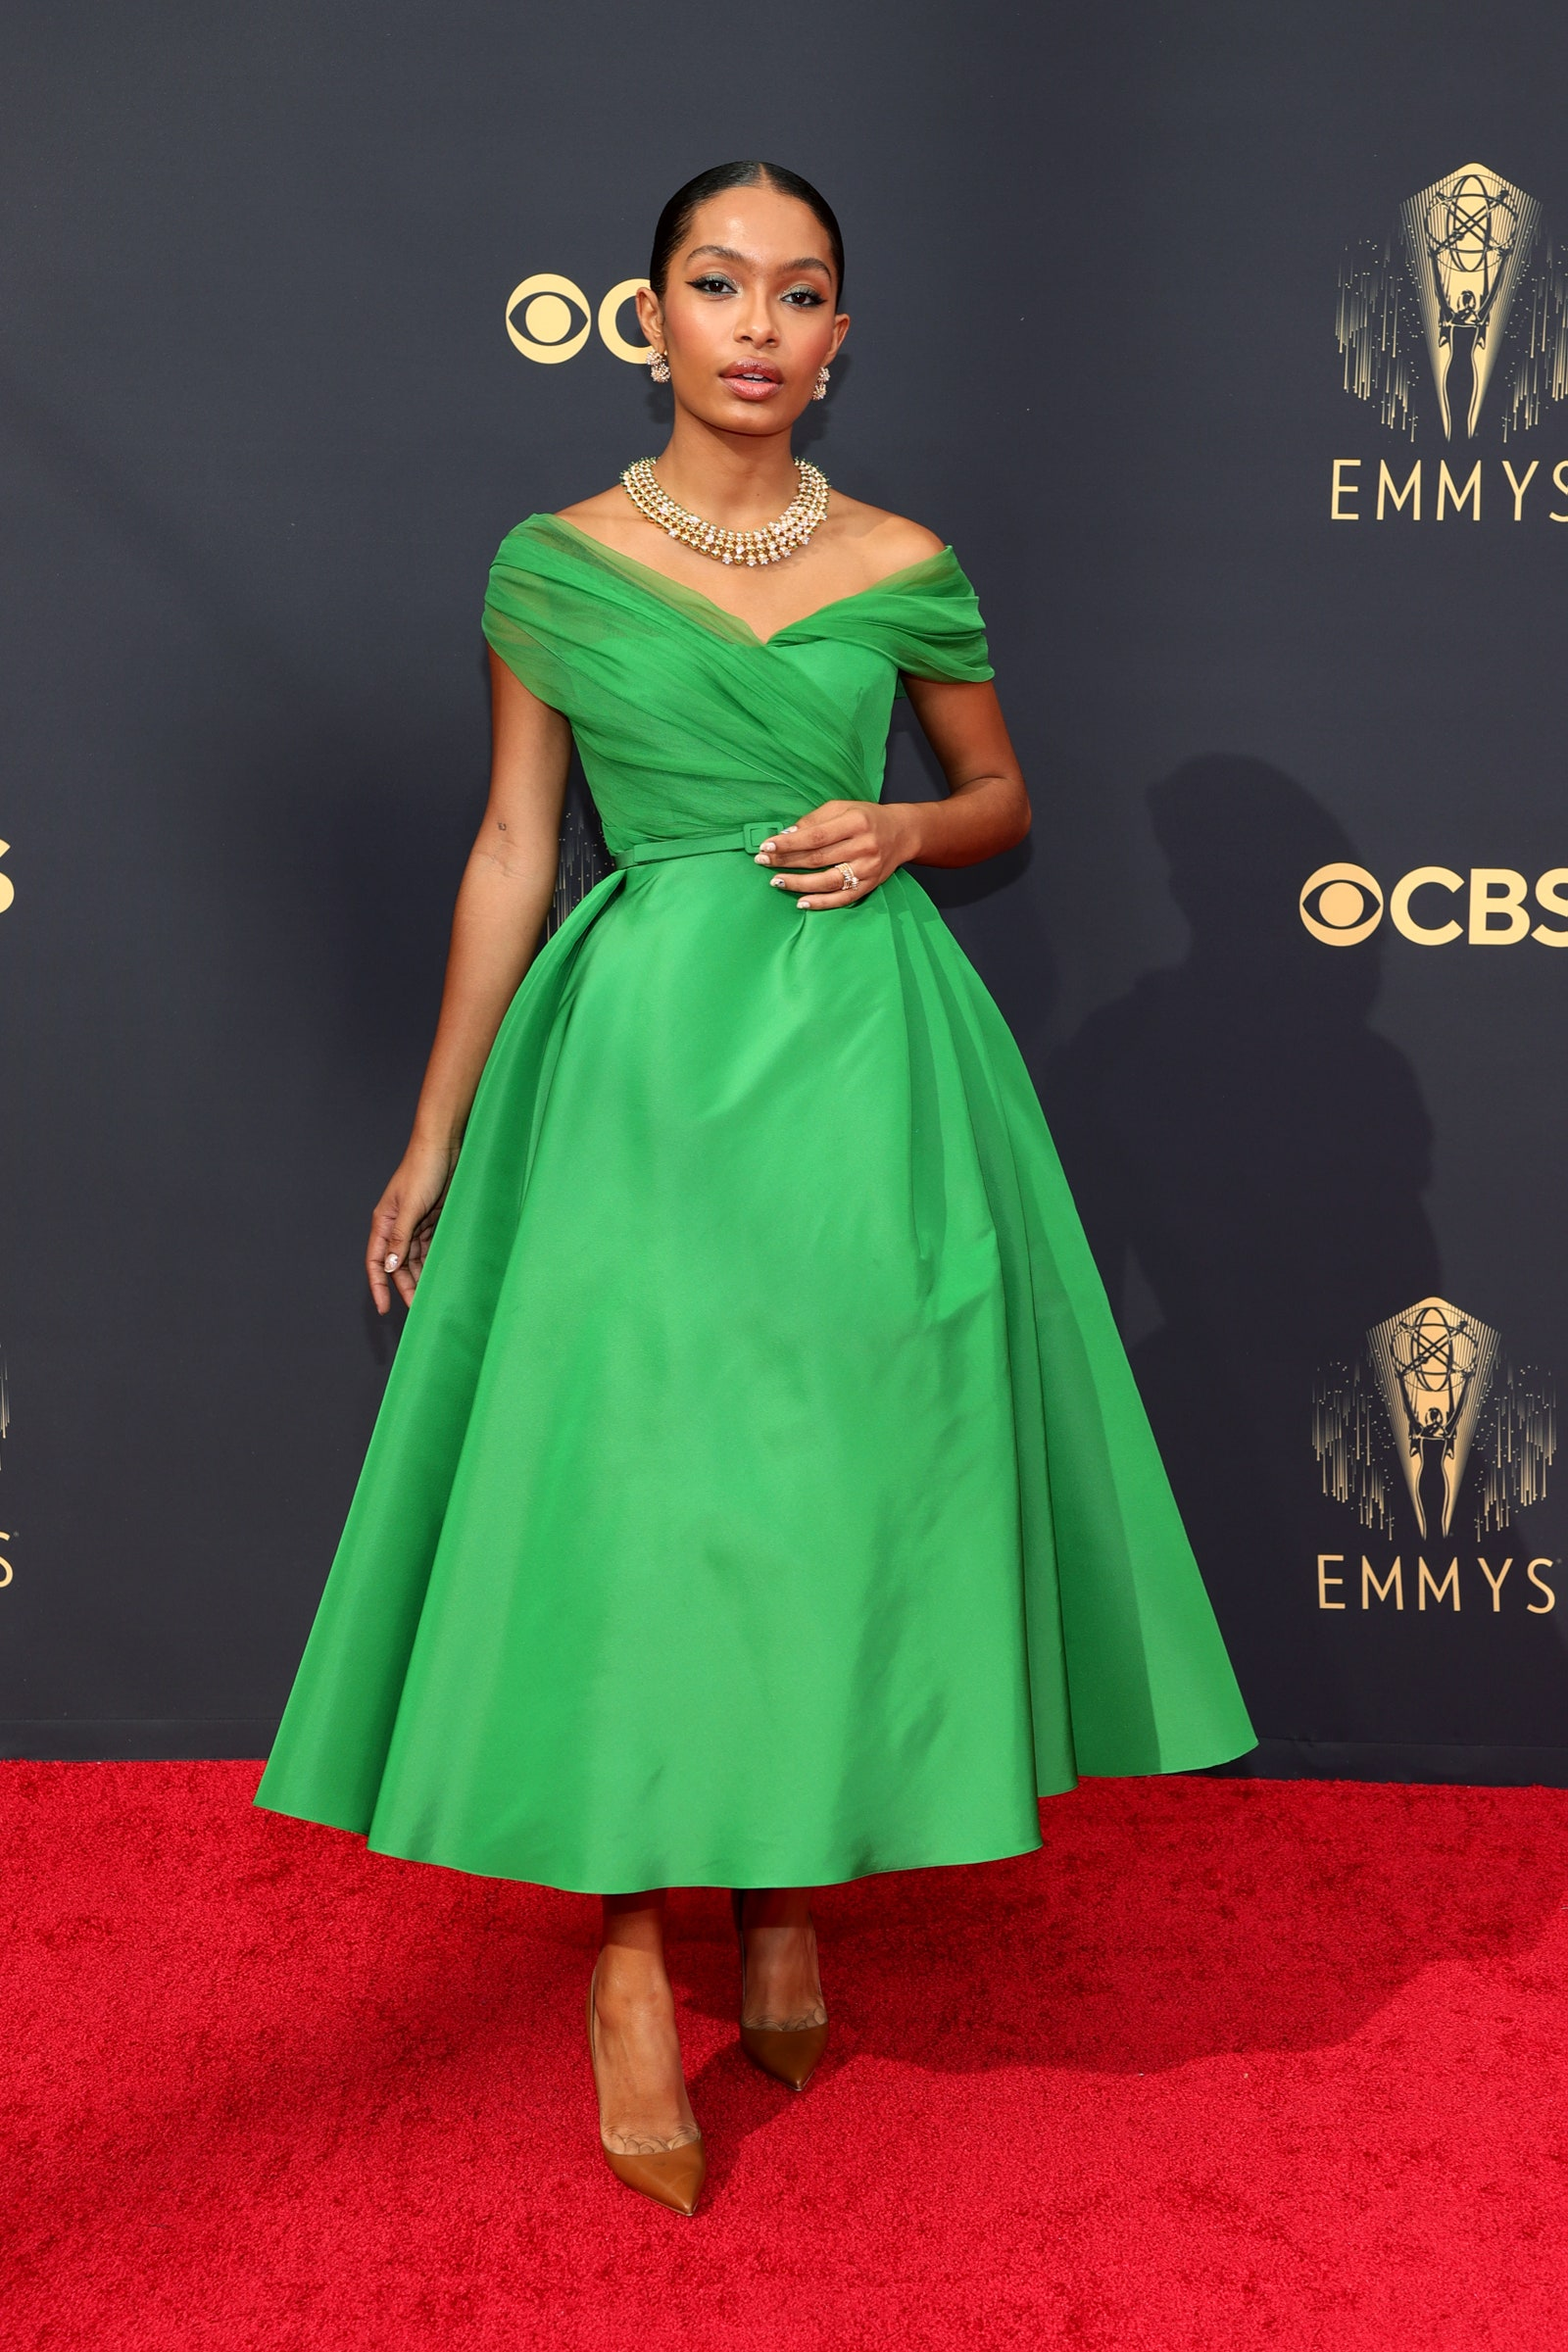 emmys-2021-best-dressed-red-carpet-looks-style-rave